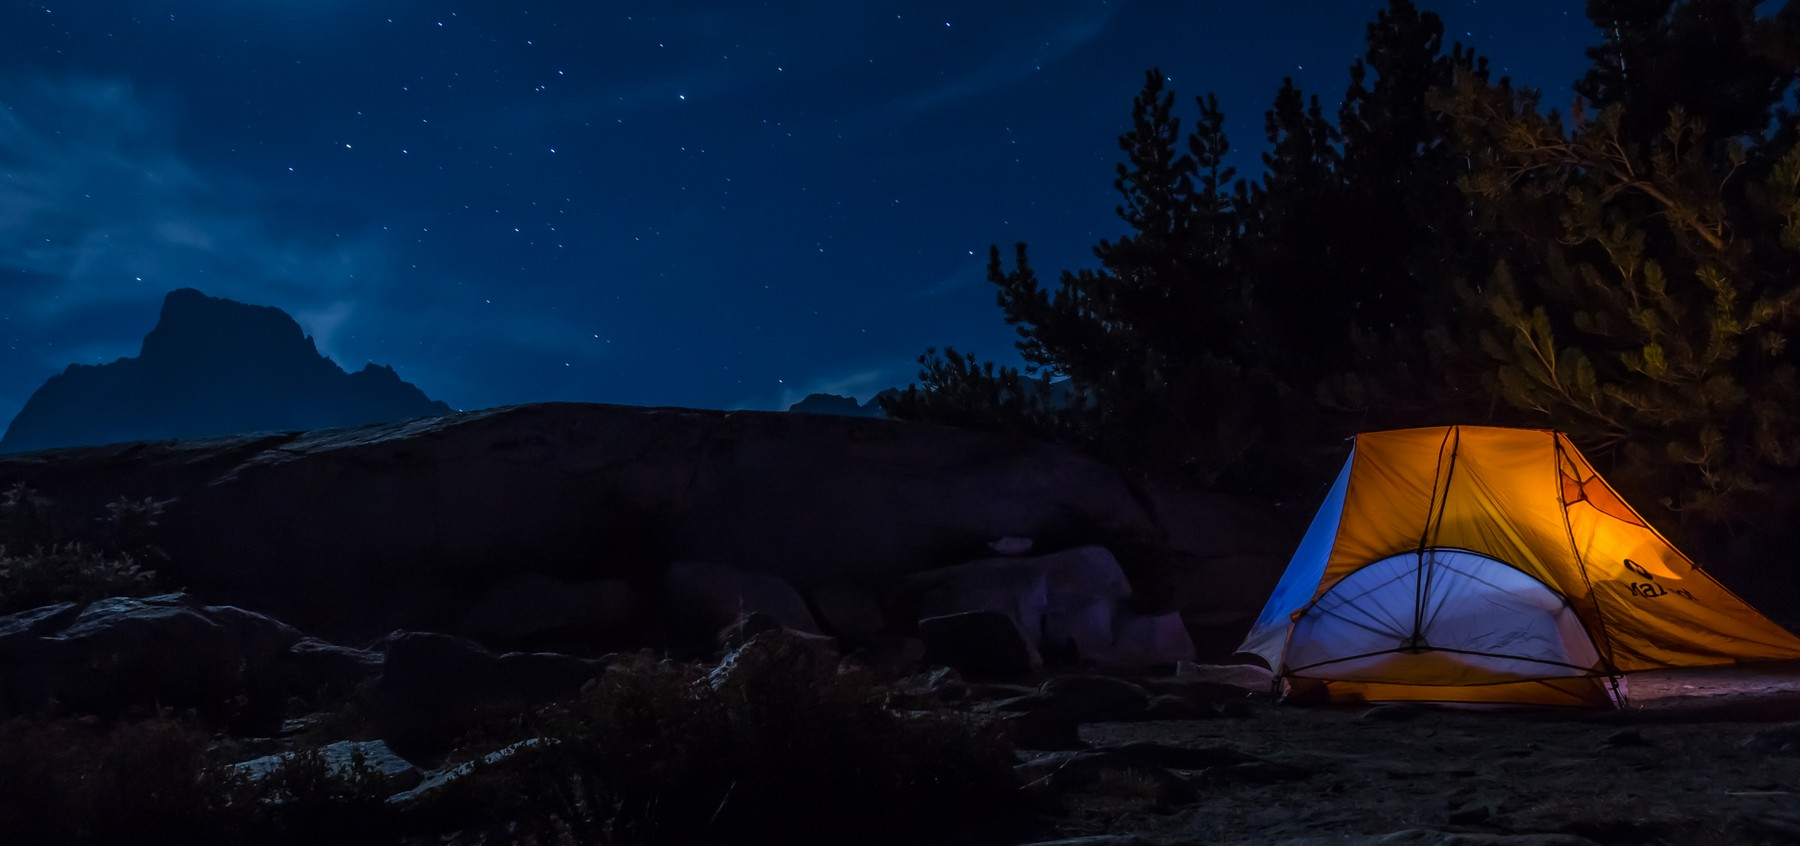 Blue, Third Place: Dale Fehr, Hampton. 'I took this photo at Thousand Island Lake in the Sierra Nevada Mountains near Mammoth Lake, California. I was camping there on a hiking trip. I wanted to try a photo by lighting up my tent. The moonlight made fo